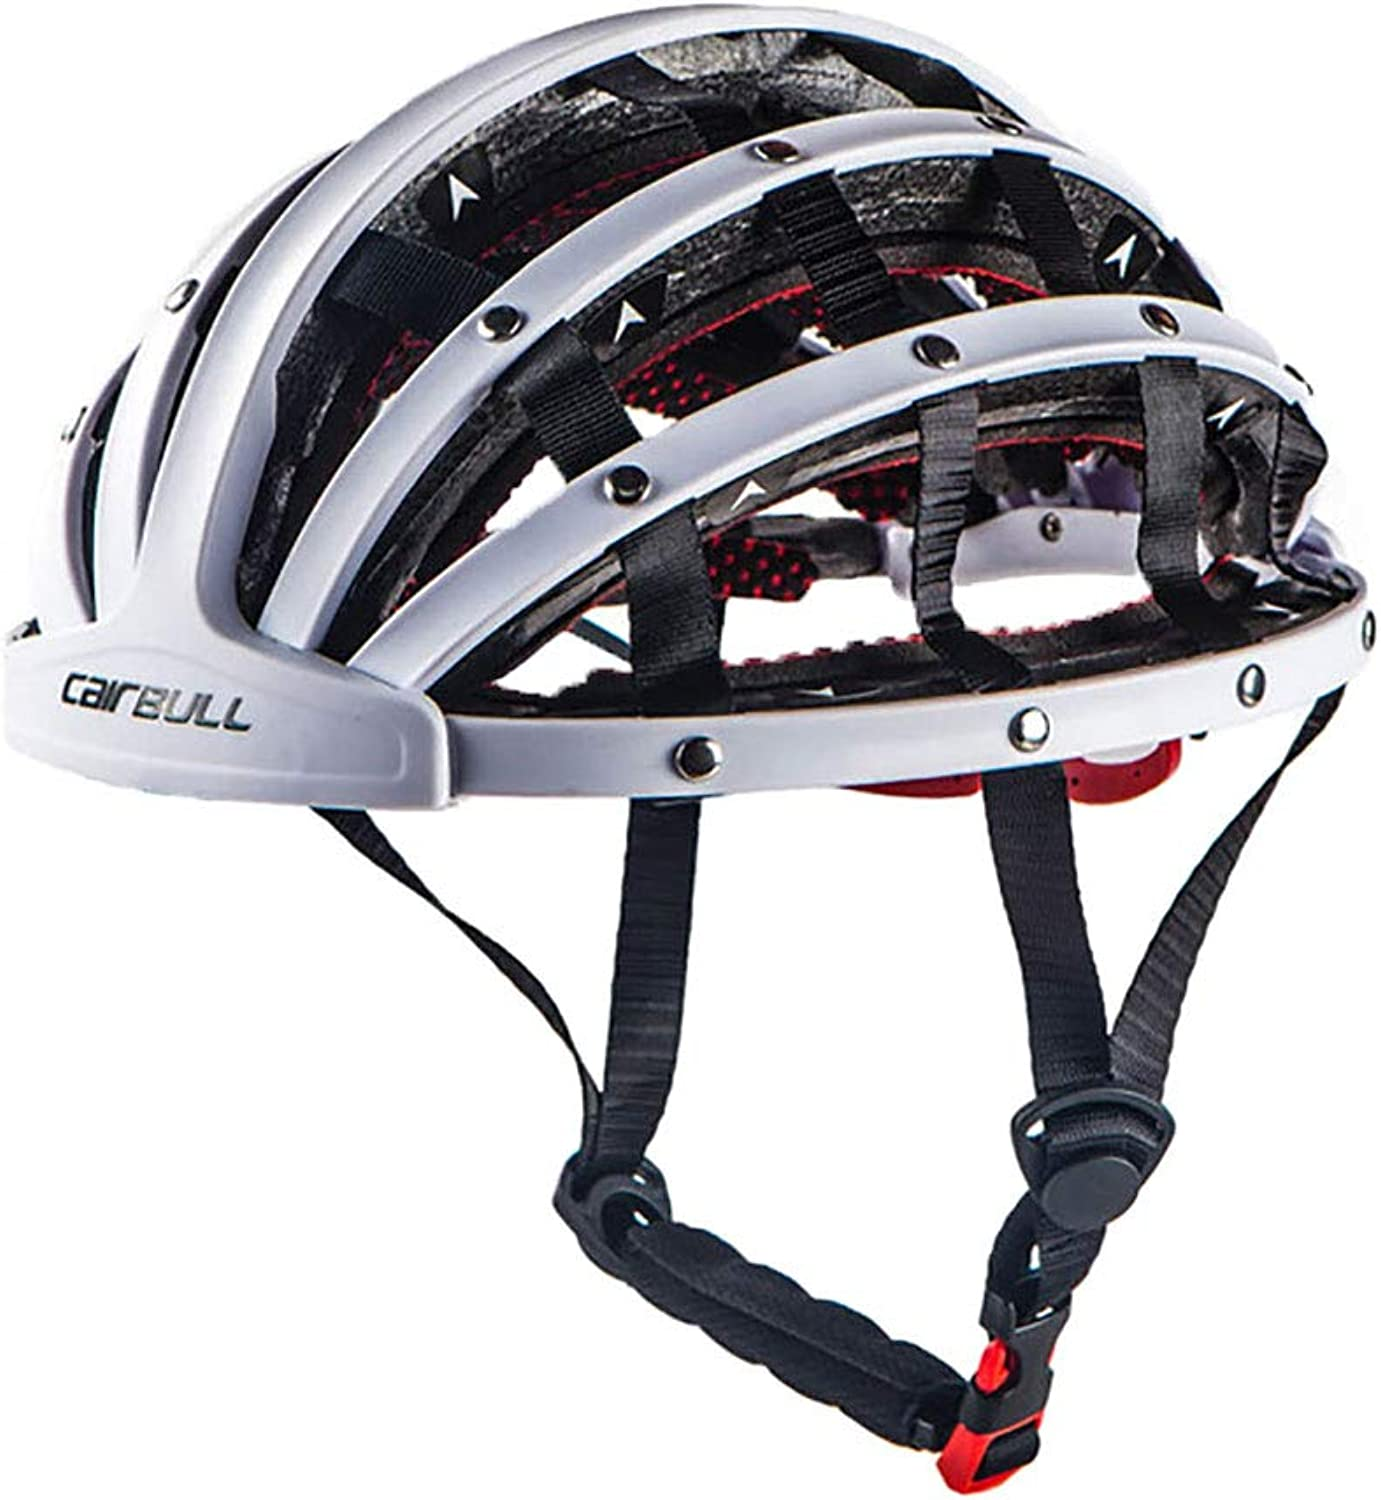 ZKxl8ca Ultralight Safety Cycling Helmet Foldable Mountain Road Bike Outdoor Breathable